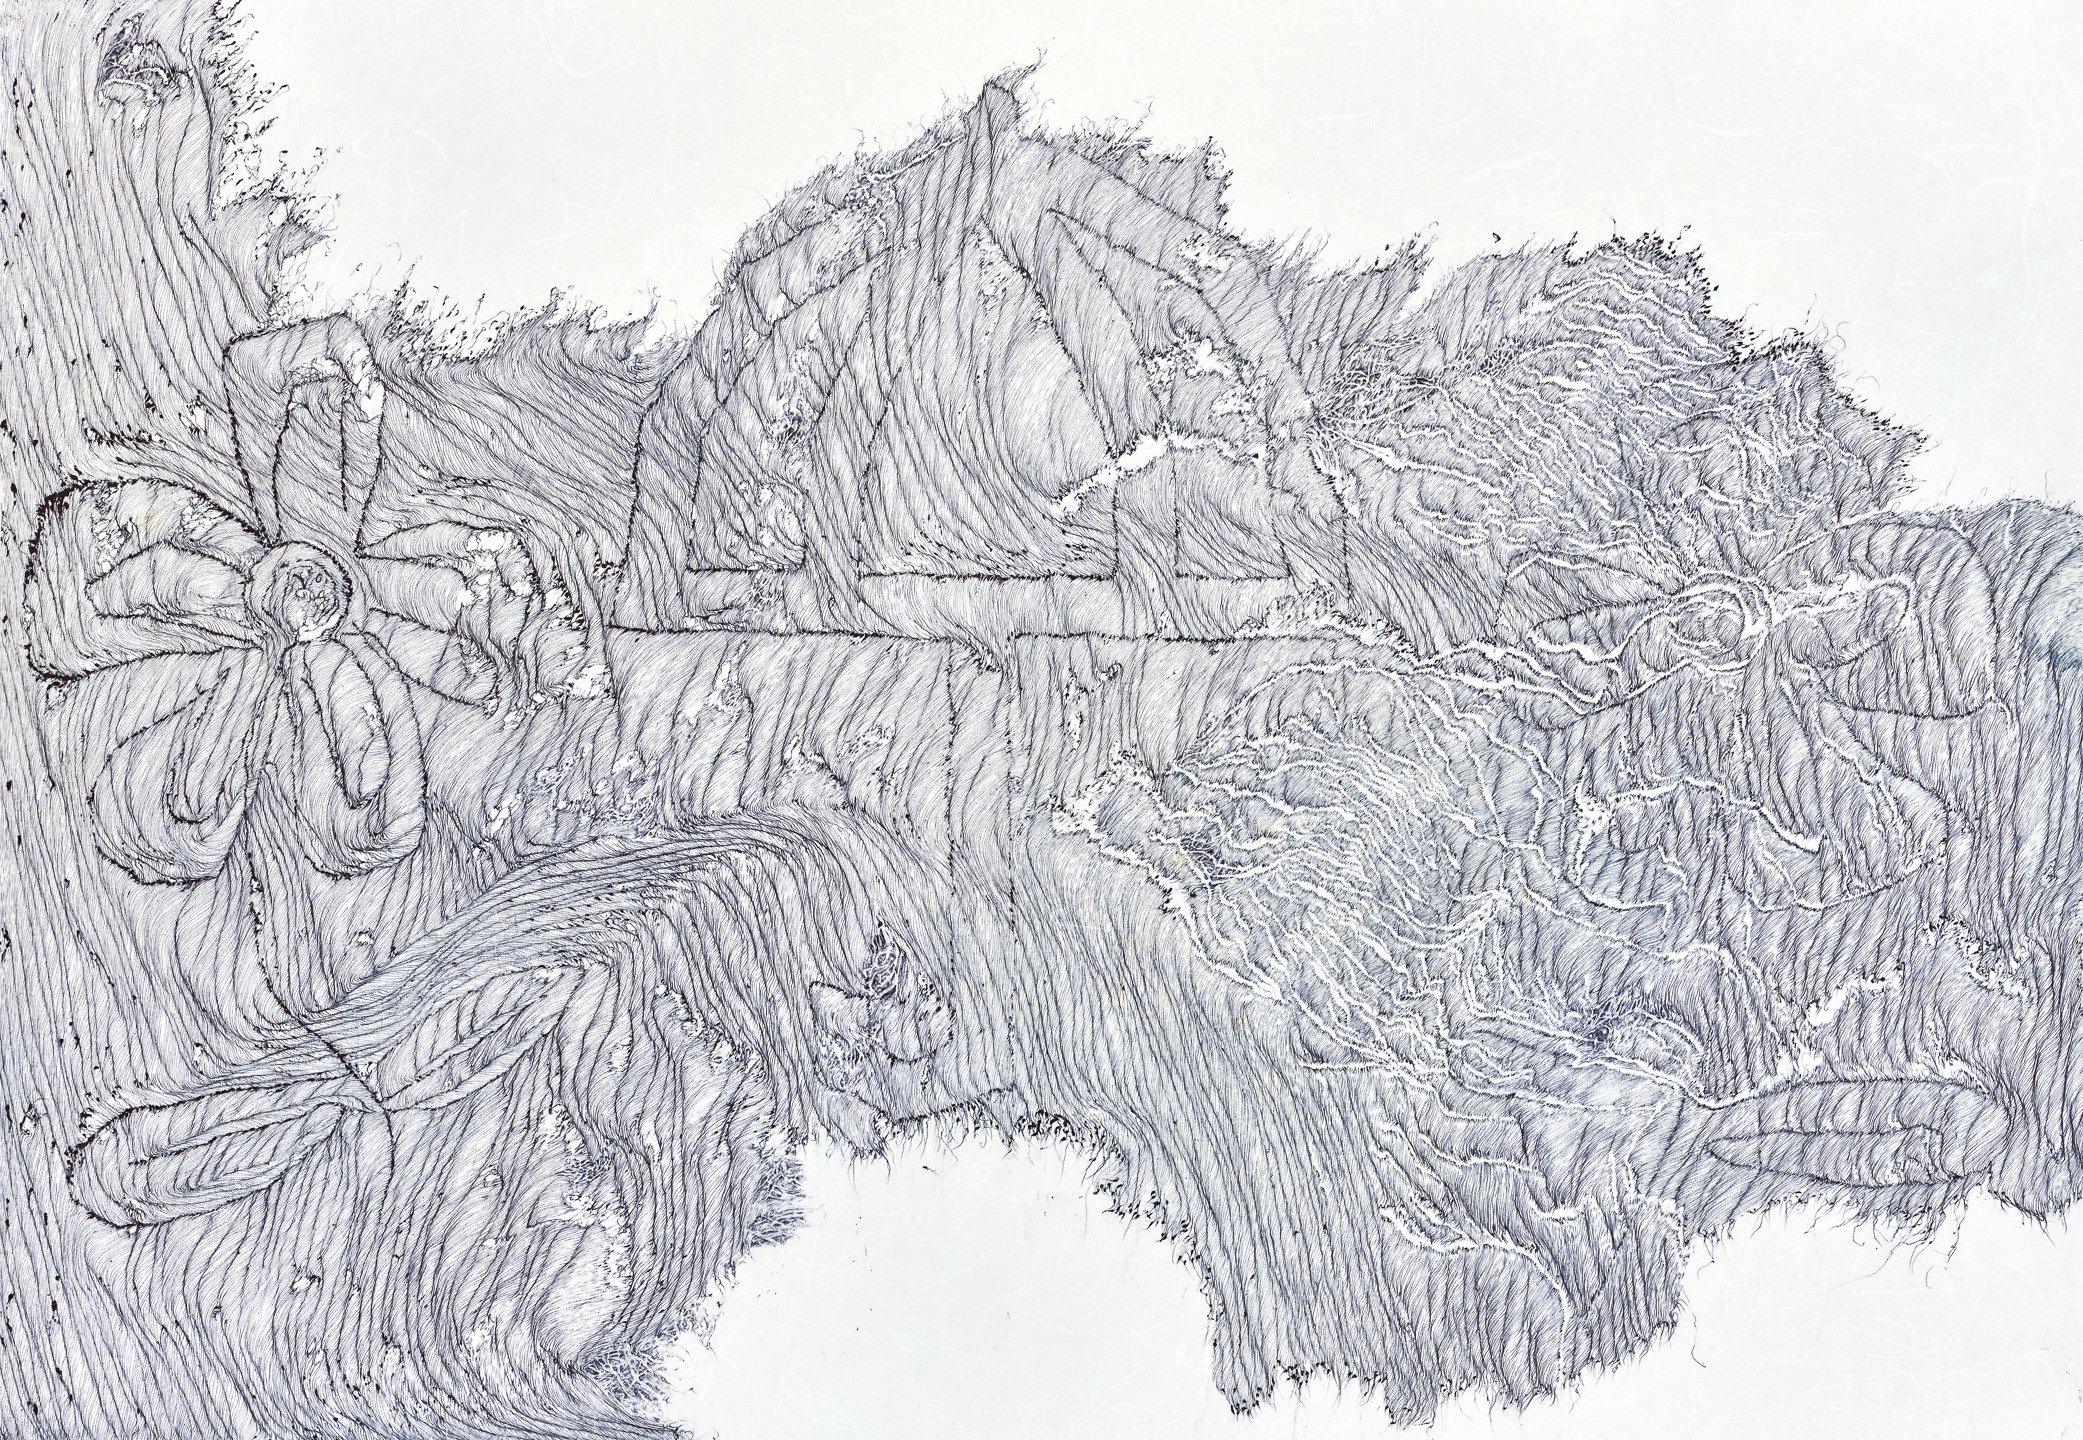 Dauntlessly - 14 yo chalk girl 1, ball pen on paper, 64cm (height) x 93cm (width), 2015